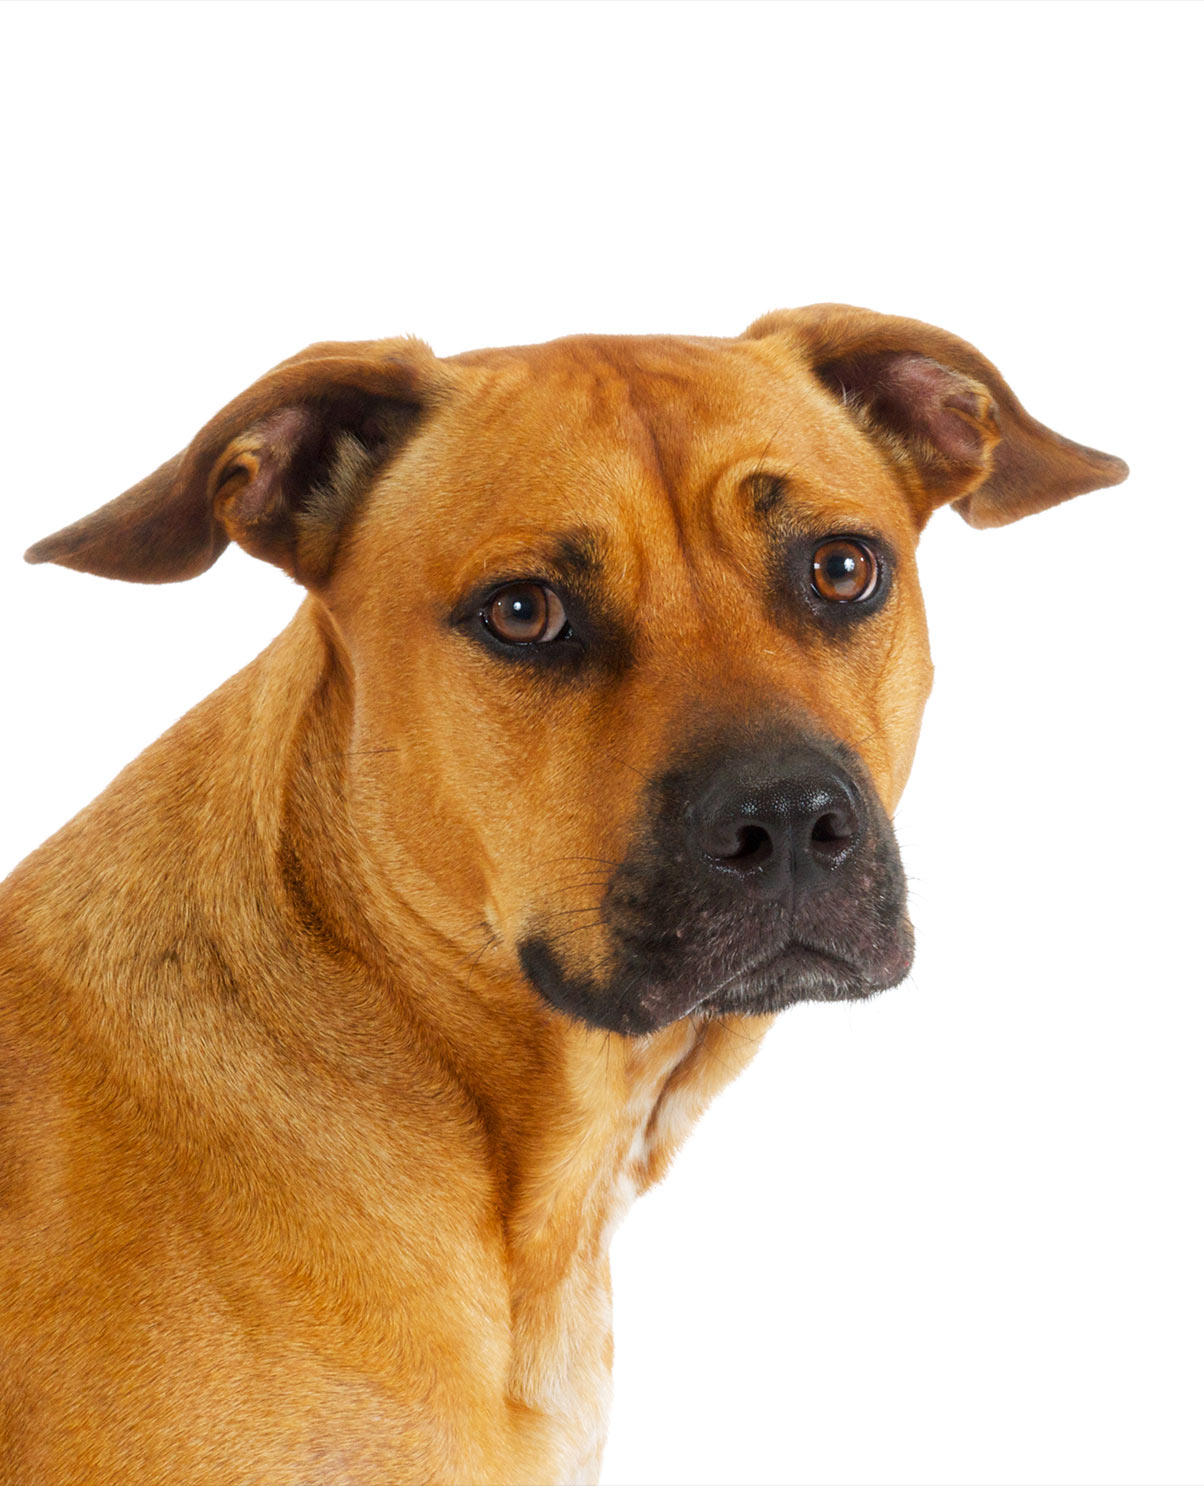 Black Mouth Cur Pitbull Mix